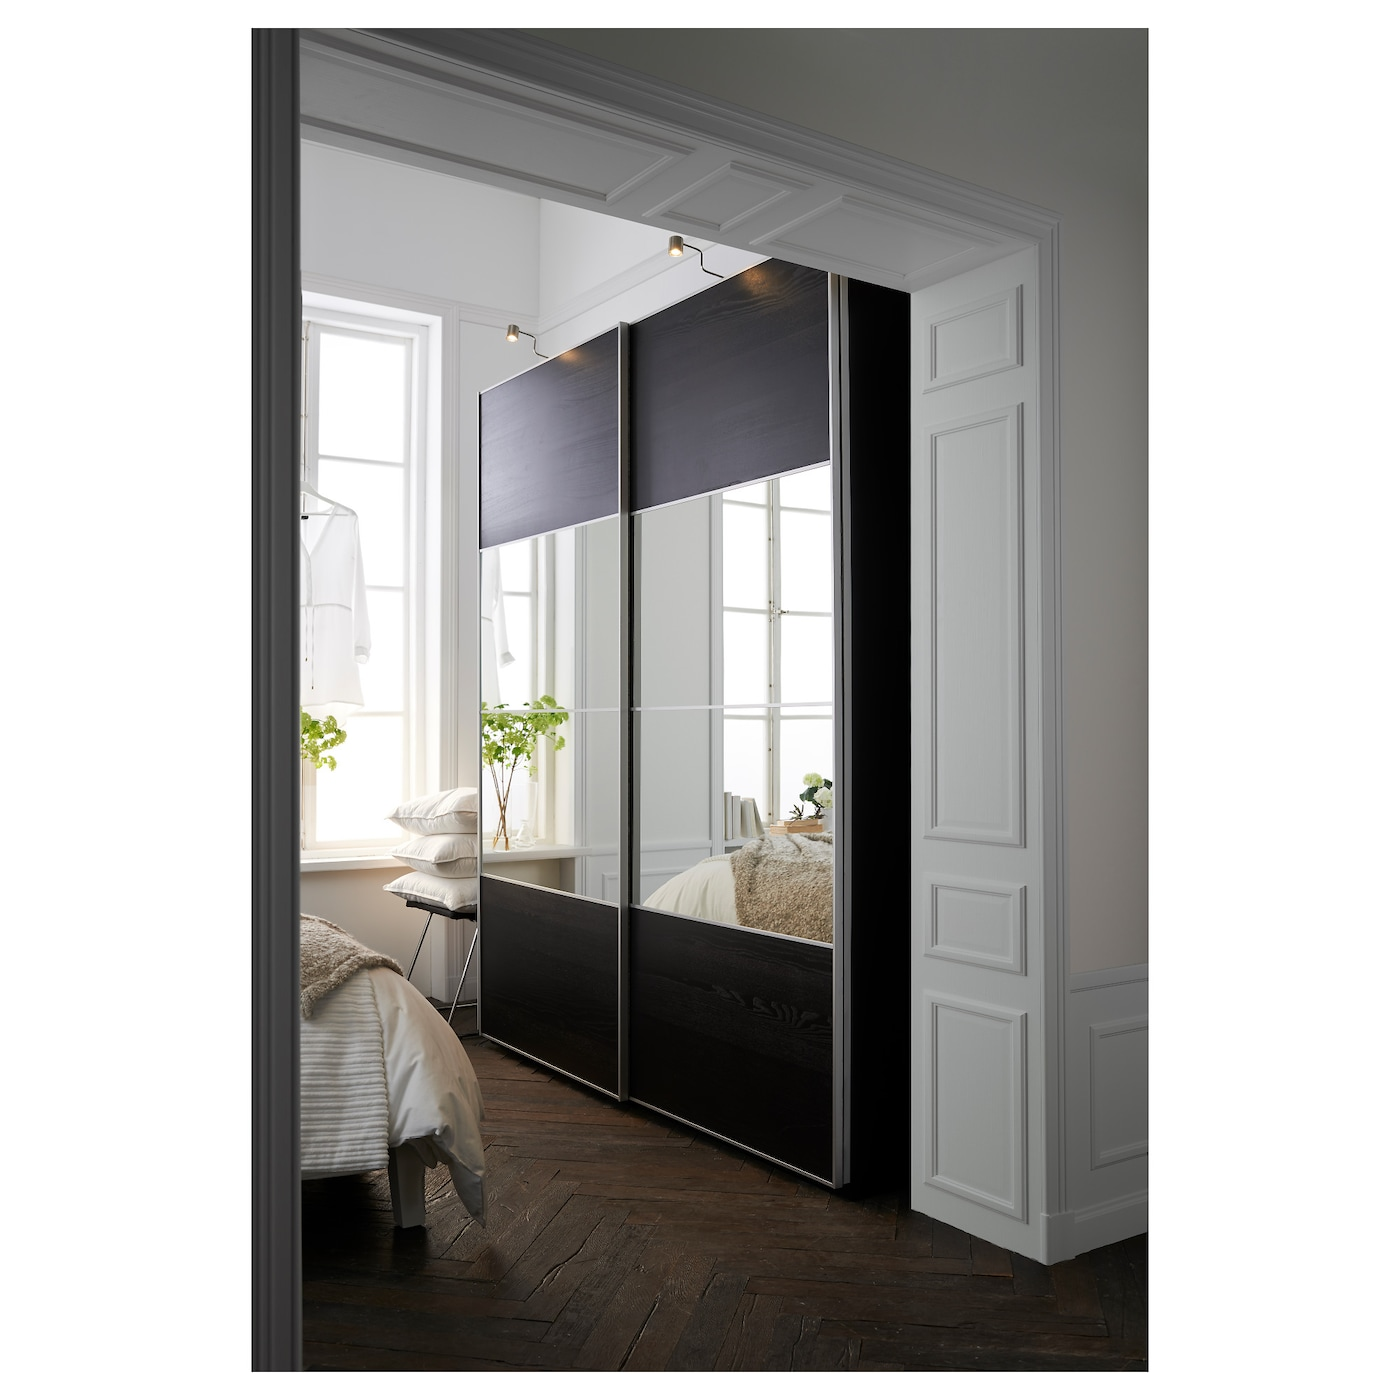 Pax wardrobe black brown auli ilseng 200x66x236 cm ikea - Ikea placard coulissant ...